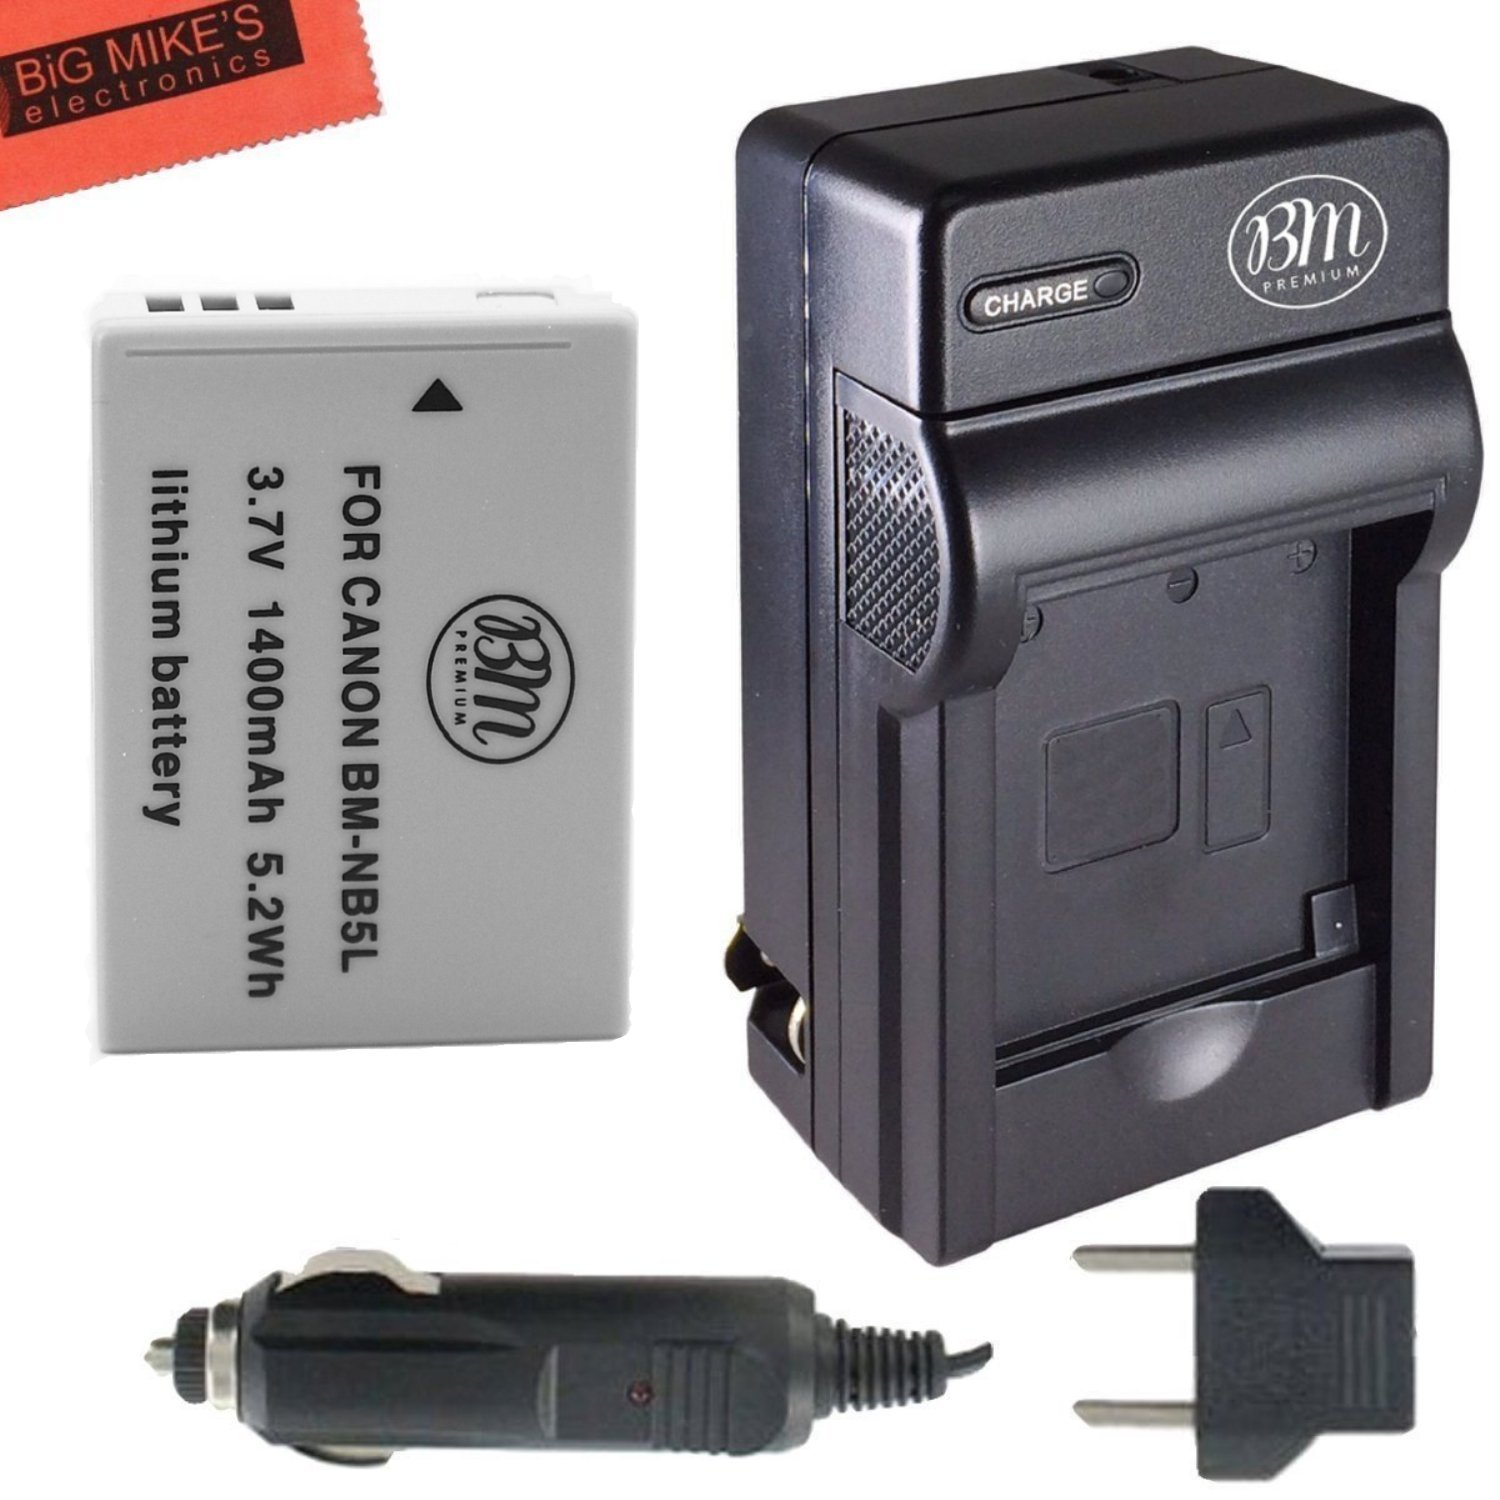 NB-5L Battery & Charger Kit Canon PowerShot S100 S110 SX200 HS SX210 HS SX230 HS Digital Camera Includes NB-5L Replacement Battery + AC/DC Battery Charger + LCD Screen Protectors + Micro Fiber Cleaning Cloth Big Mike' s NB5L